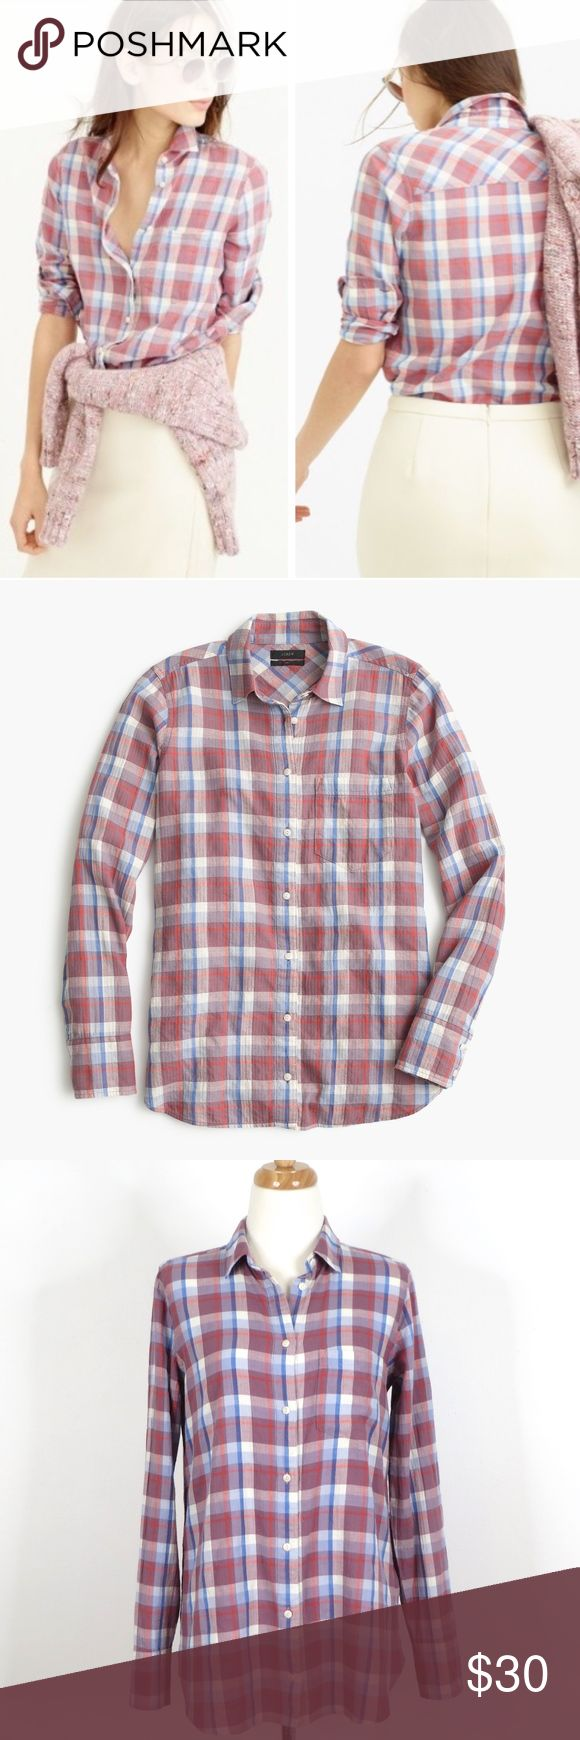 """J CREW Possibly new without tags and no defects.  Style name: Boy Shirt in Dawson Plaid.   From J Crew website: Featuring a boyfriend-inspired fit that's tailored especially for you, plus a crinkled lightweight flannel fabric that's perfect for right now.  Red blue purple white checkered plaid print, full button down front, long sleeves, 99% cotton / 1% elastane, machine wash. Approximately 19.25"""" across armpit seam to armpit seam and 28.5"""" long.   Automatically reduce price 20% for 3…"""